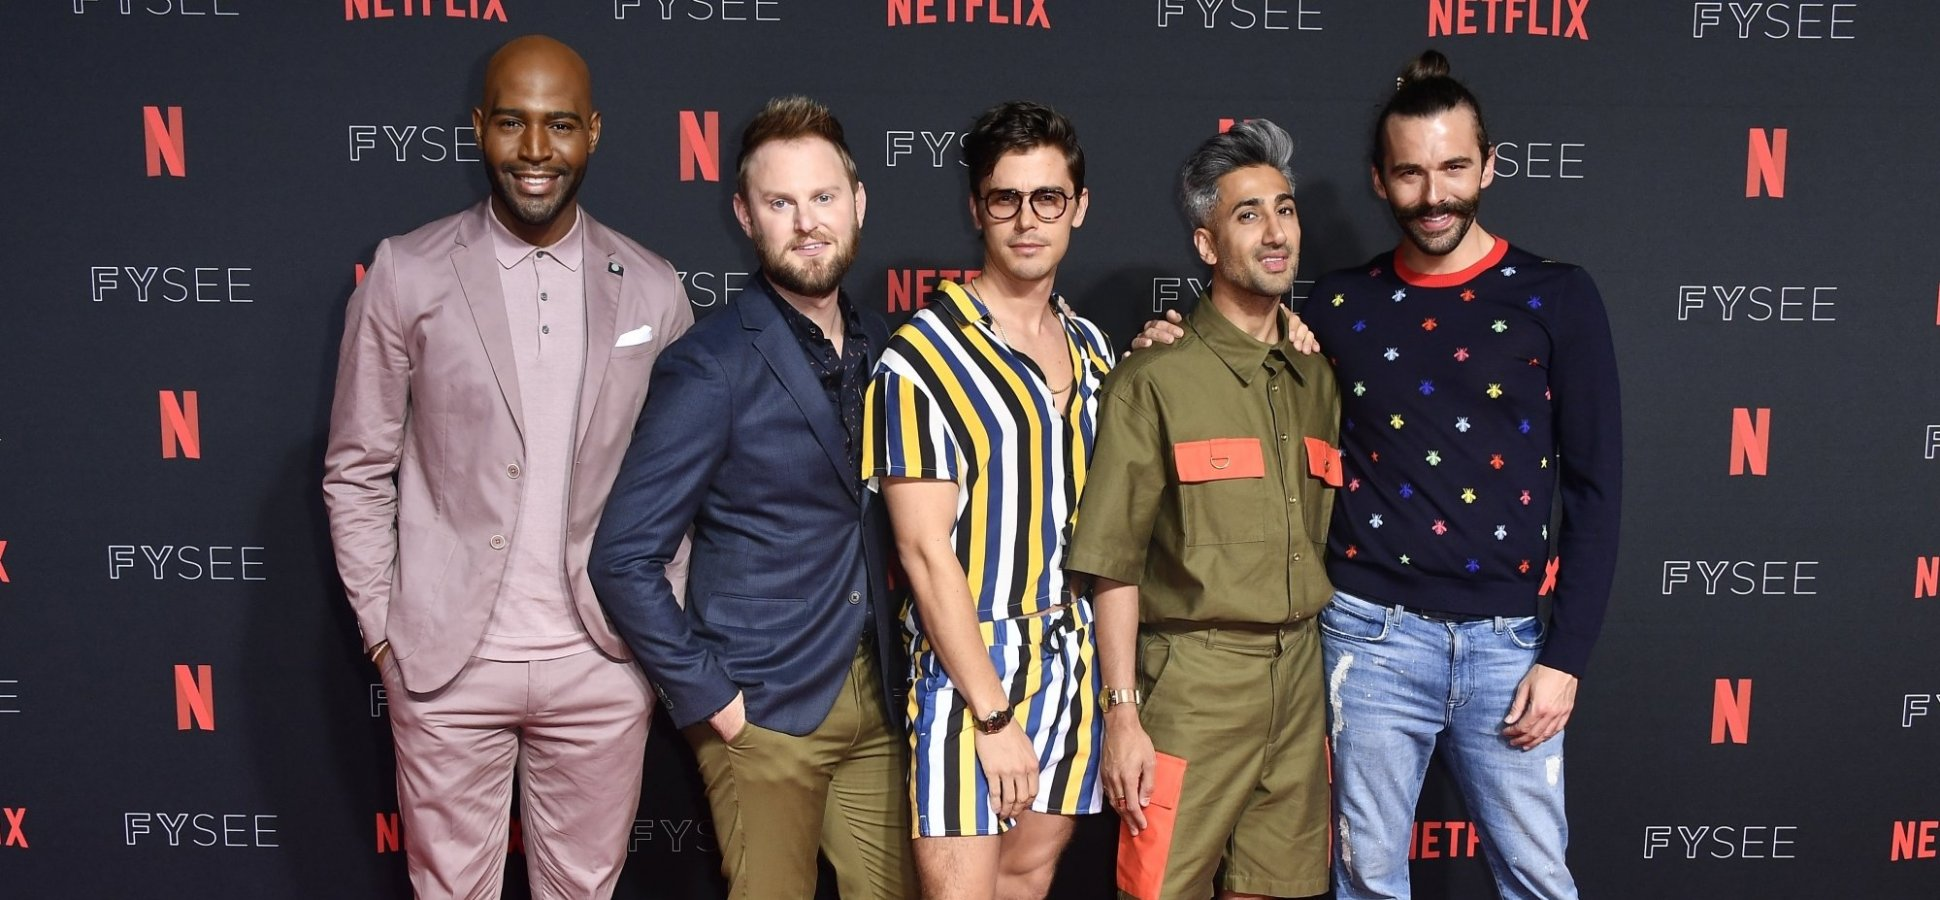 The Queer Eye Episode That We All Want To See (Listen Up Netflix!)